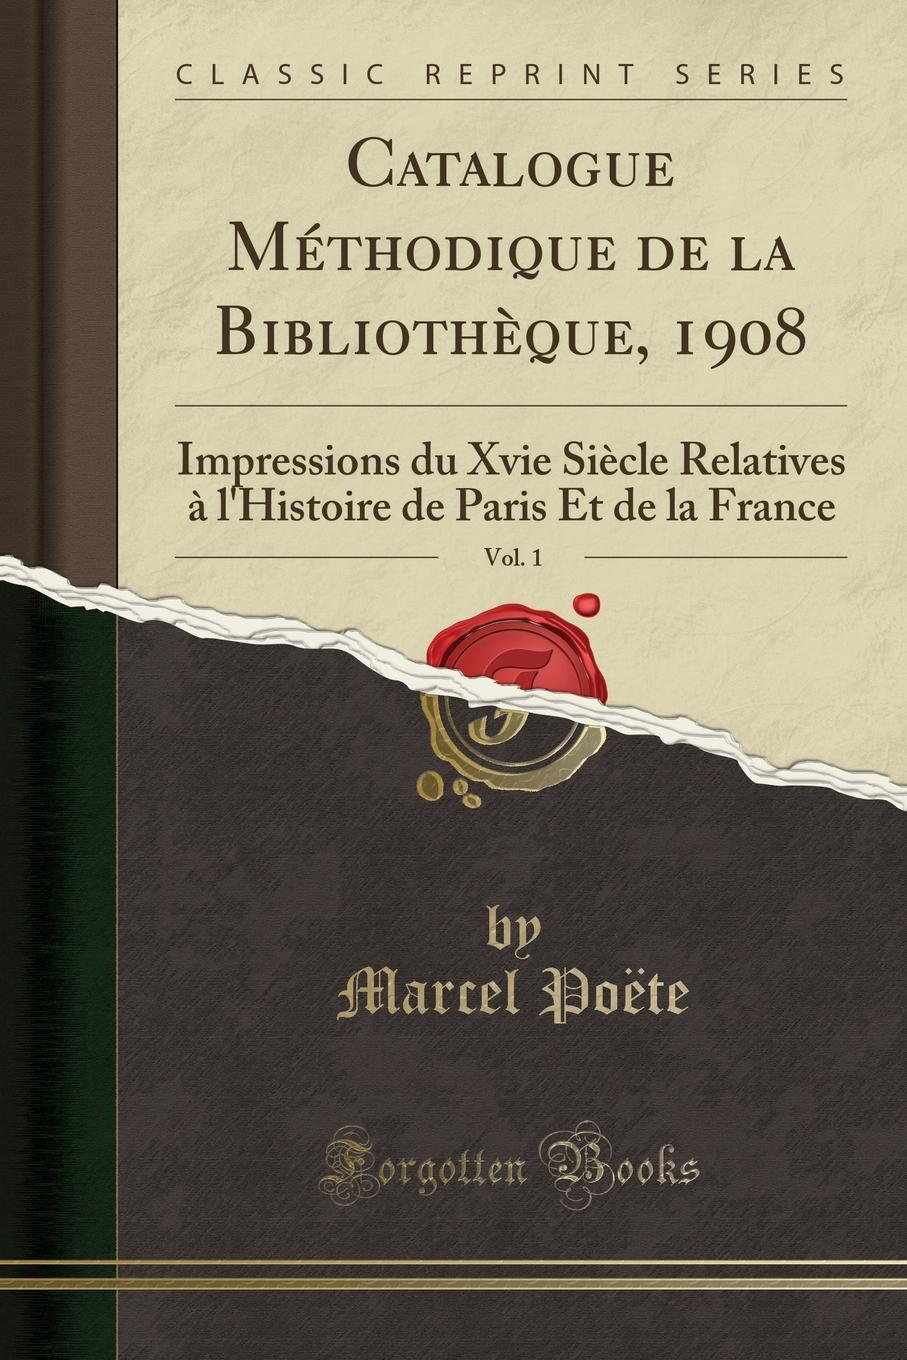 Marcel Poëte Catalogue Methodique de la Bibliotheque, 1908, Vol. 1. Impressions du Xvie Siecle Relatives a l.Histoire de Paris Et de la France (Classic Reprint)